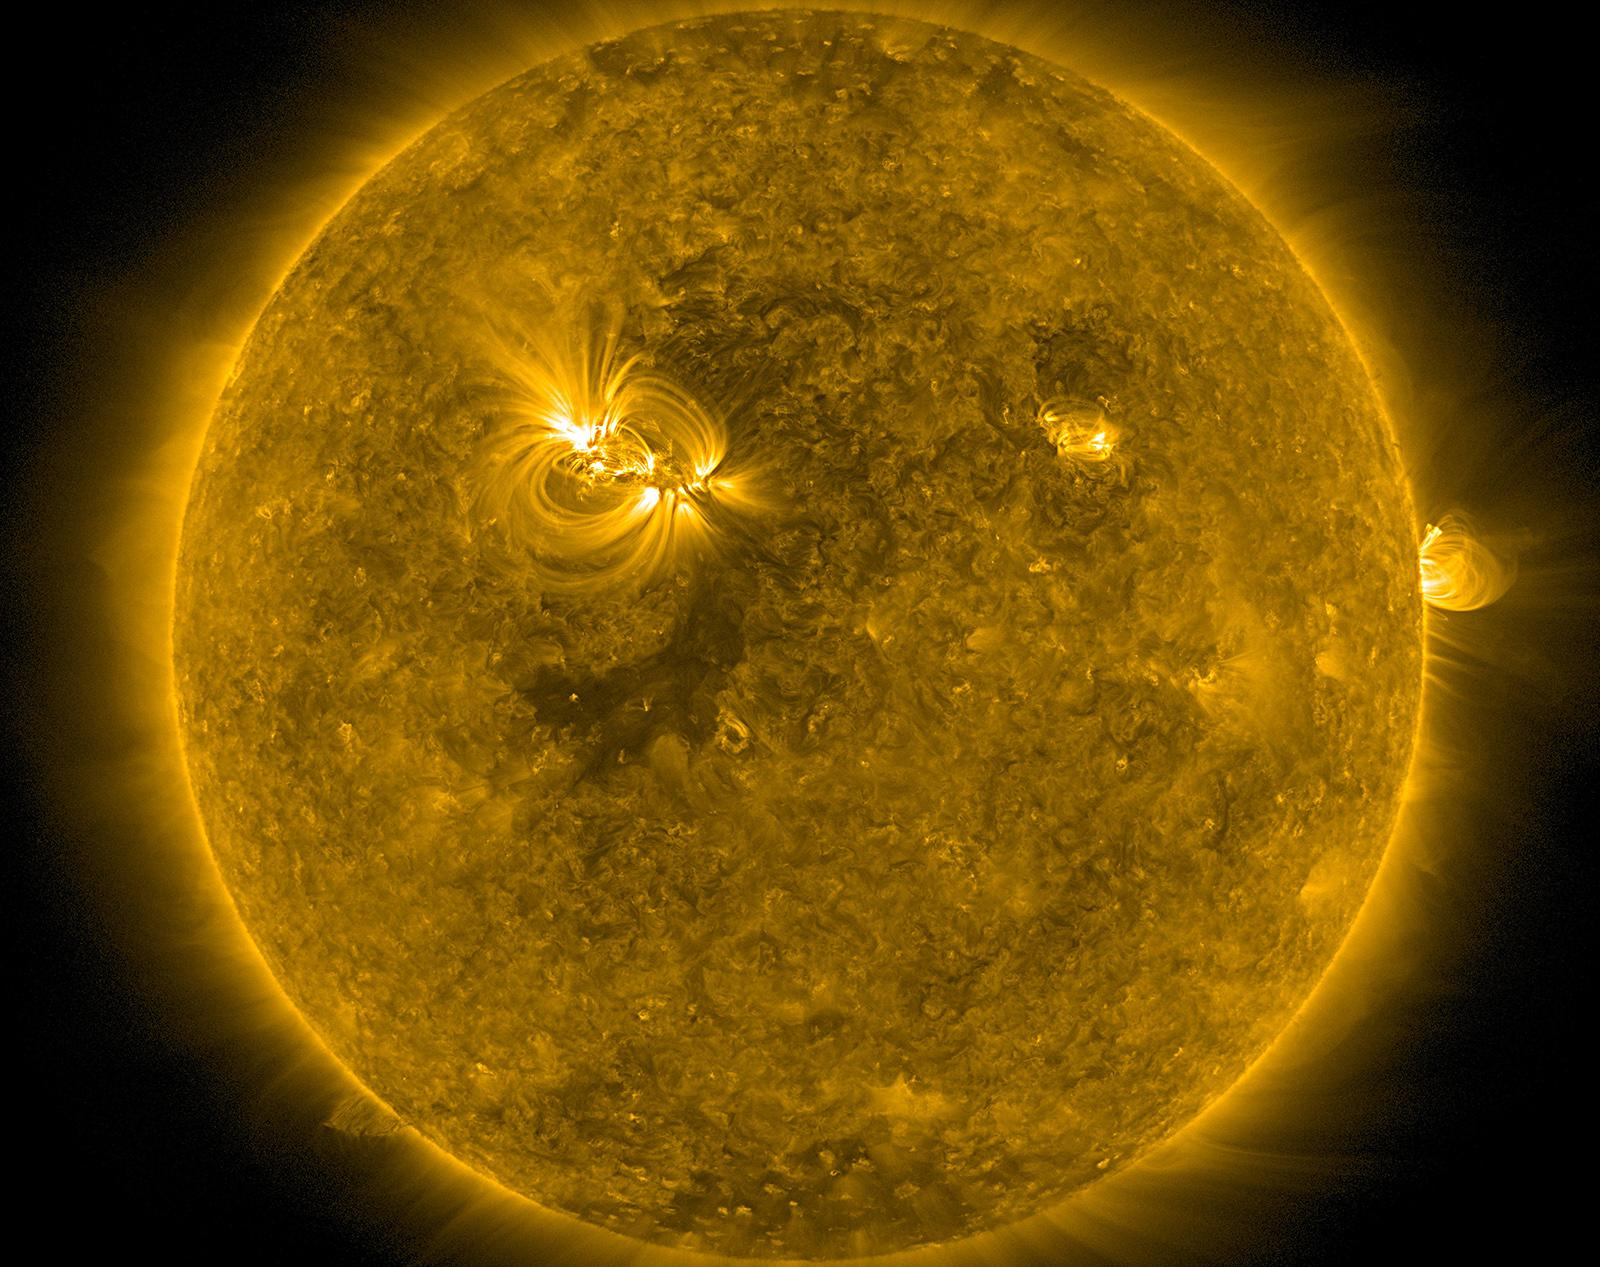 Solar Dynamics Observatory image of the Sun